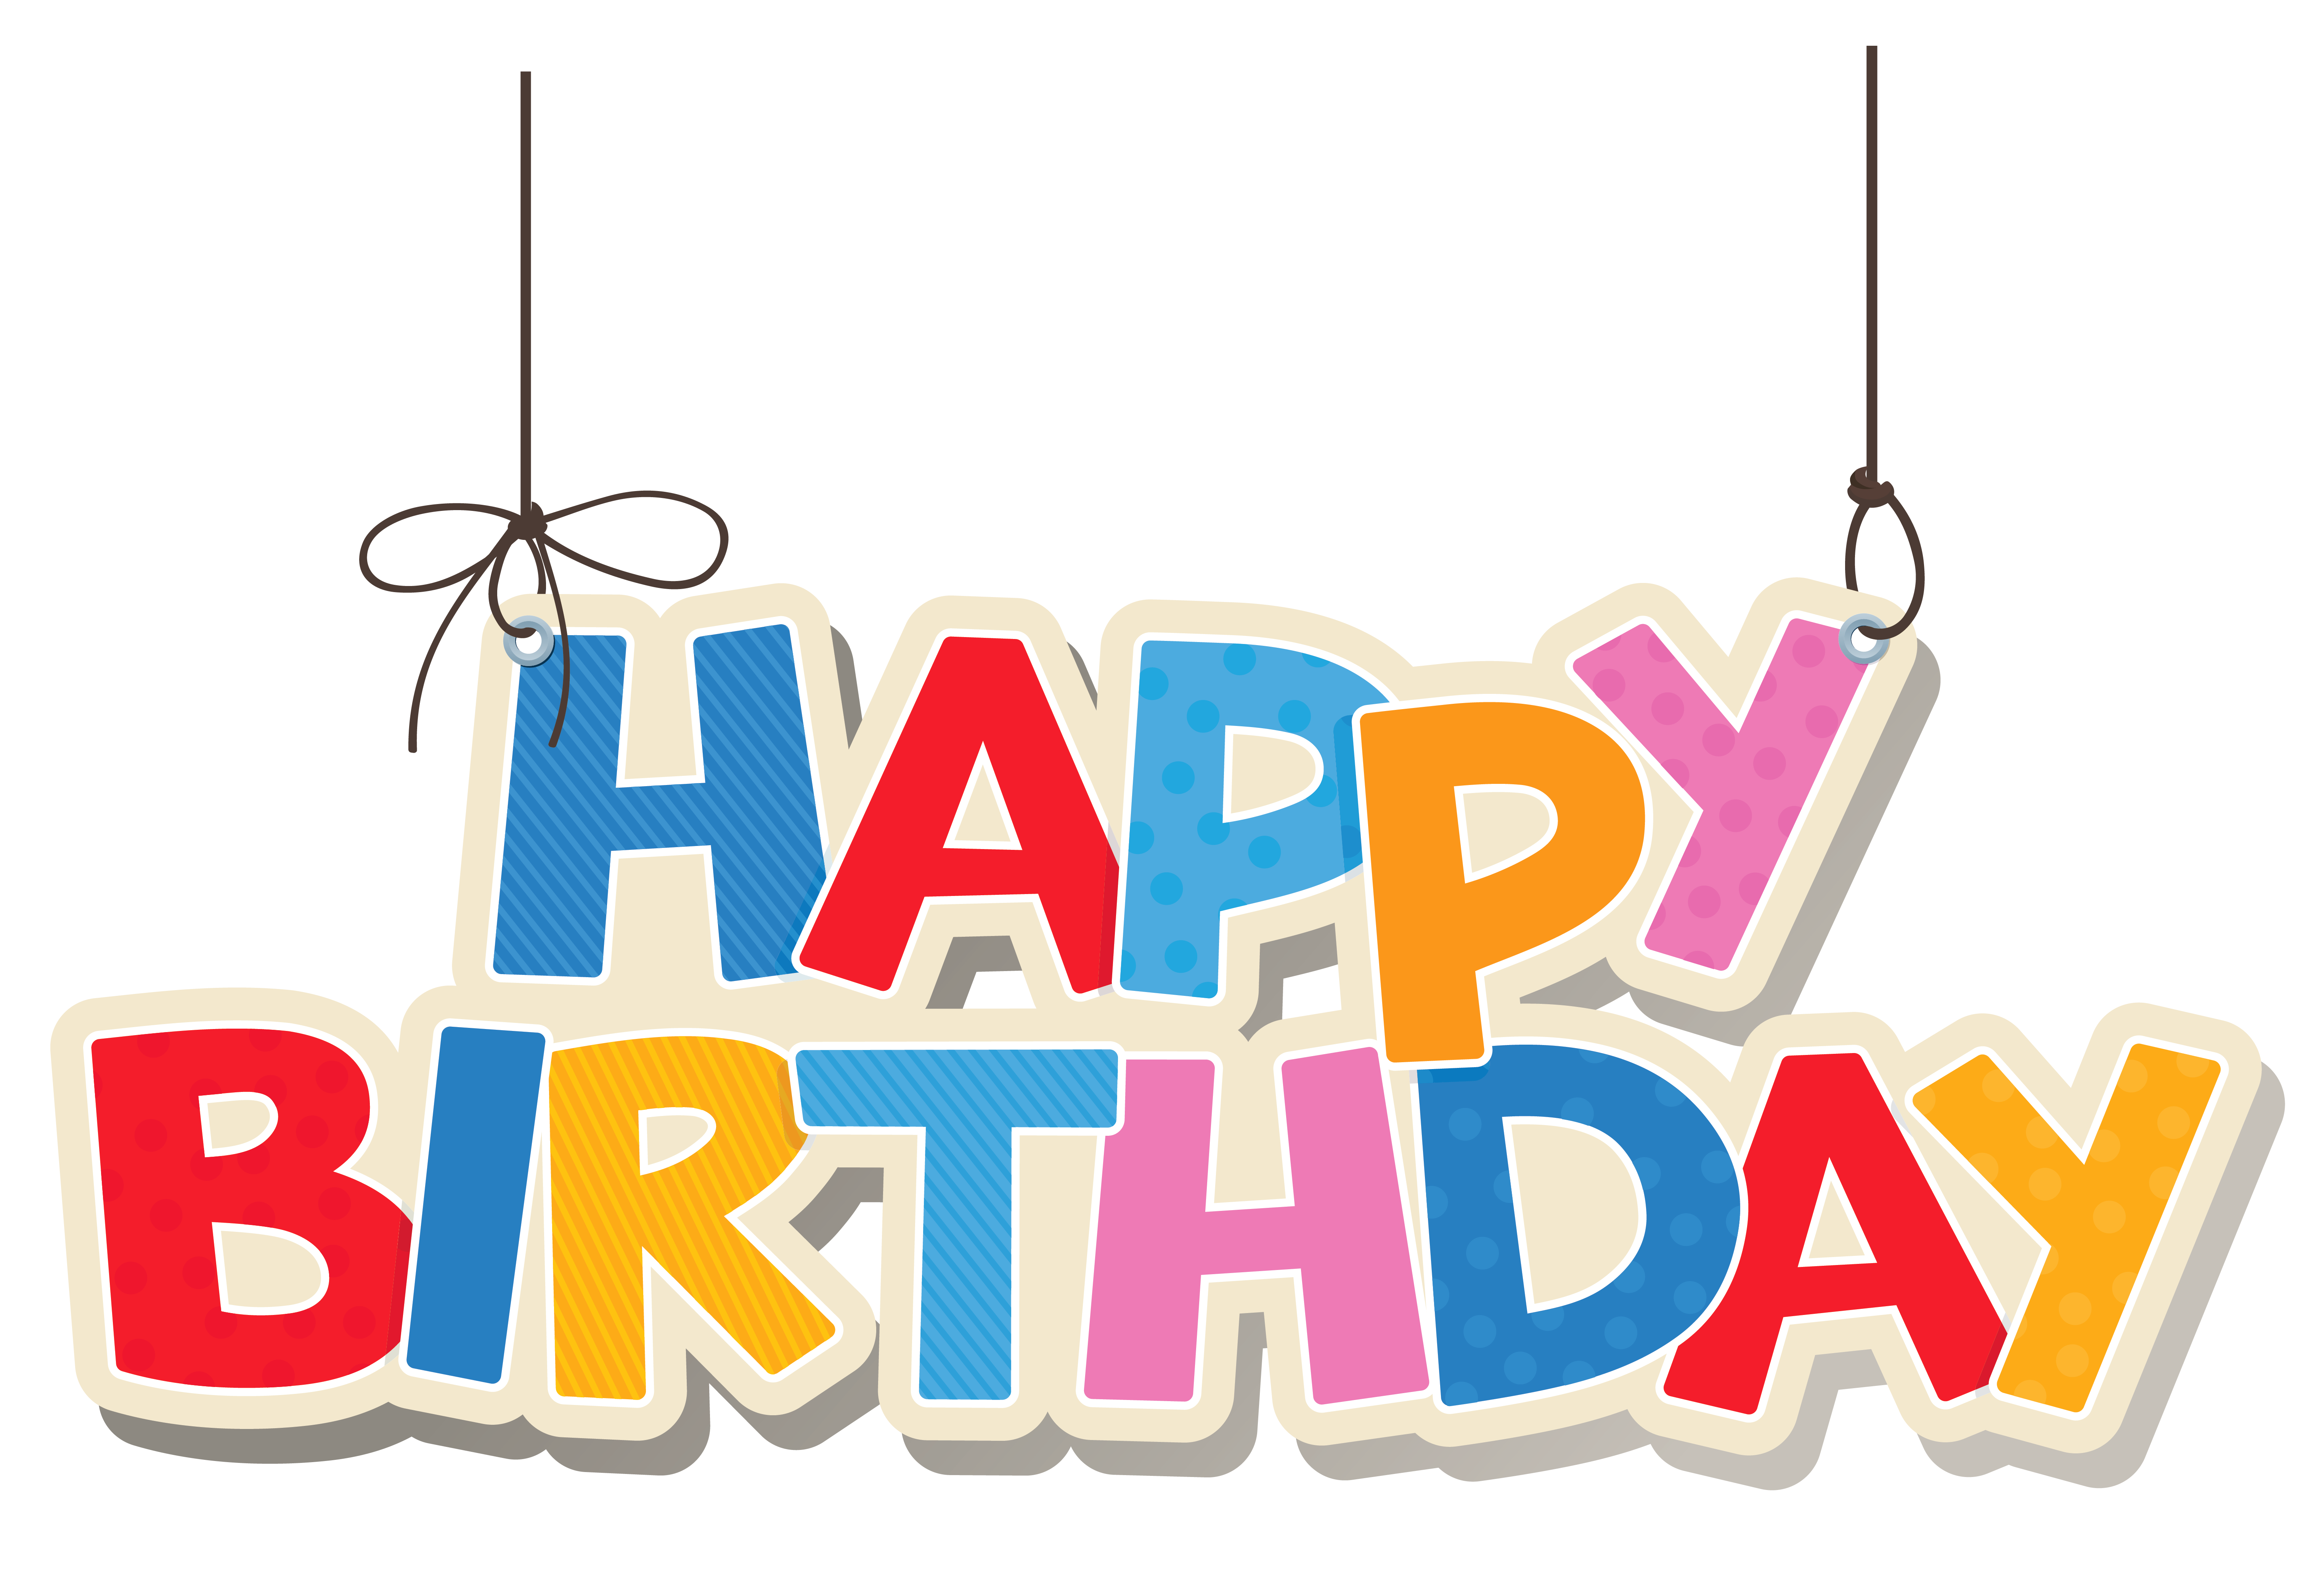 Happy birthday banner background png. Hanging colorful clipart picture